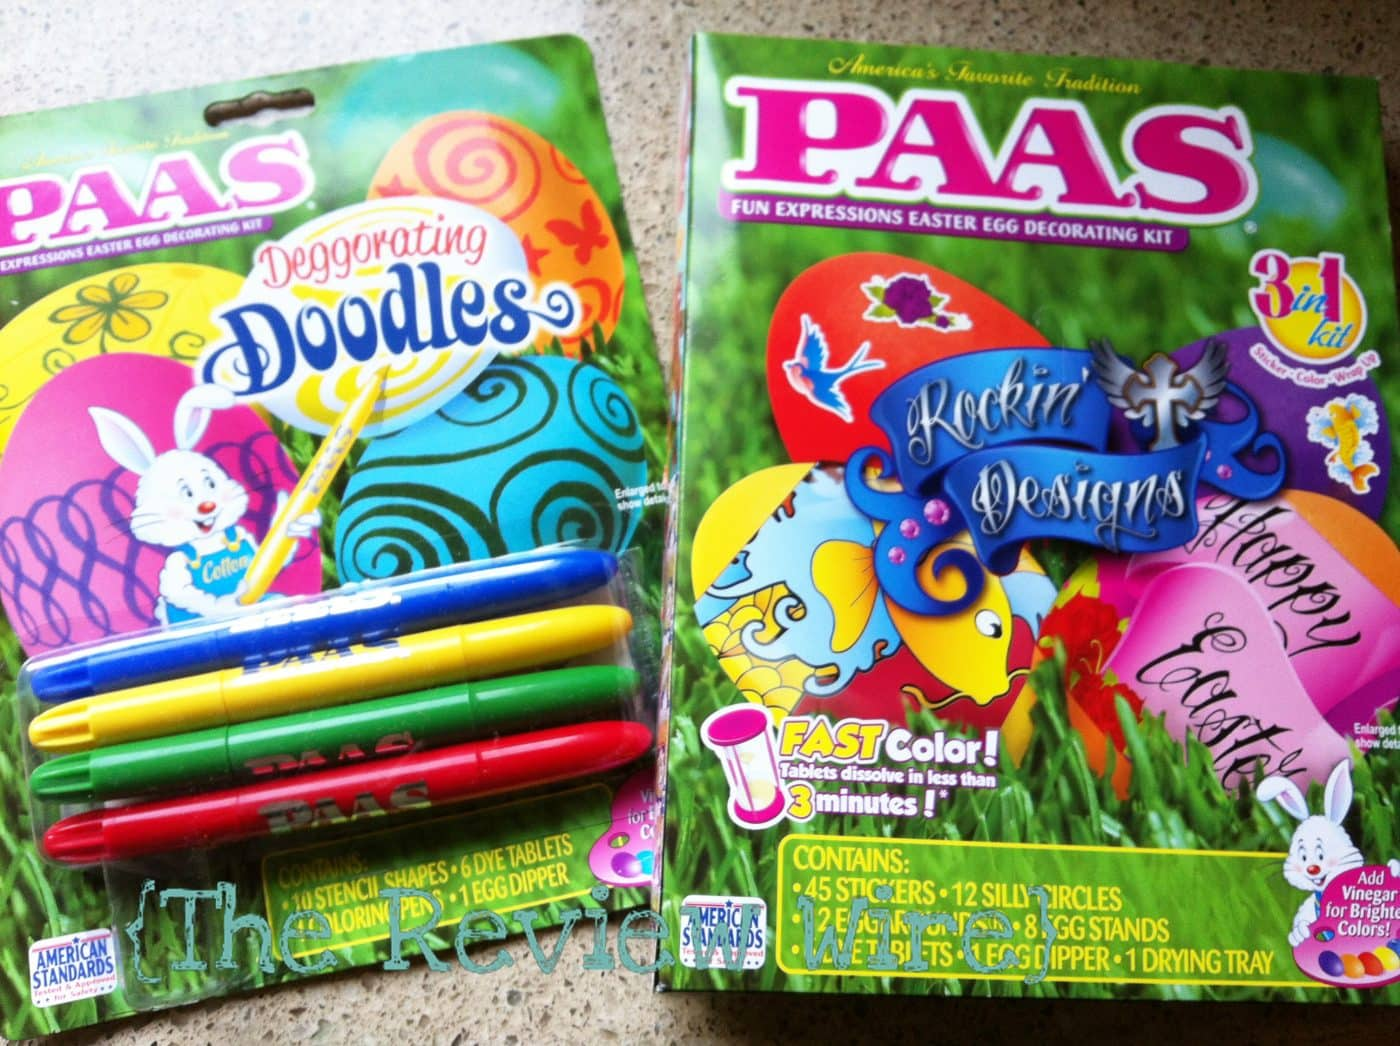 PAAS New Easter Egg Decorating Kits